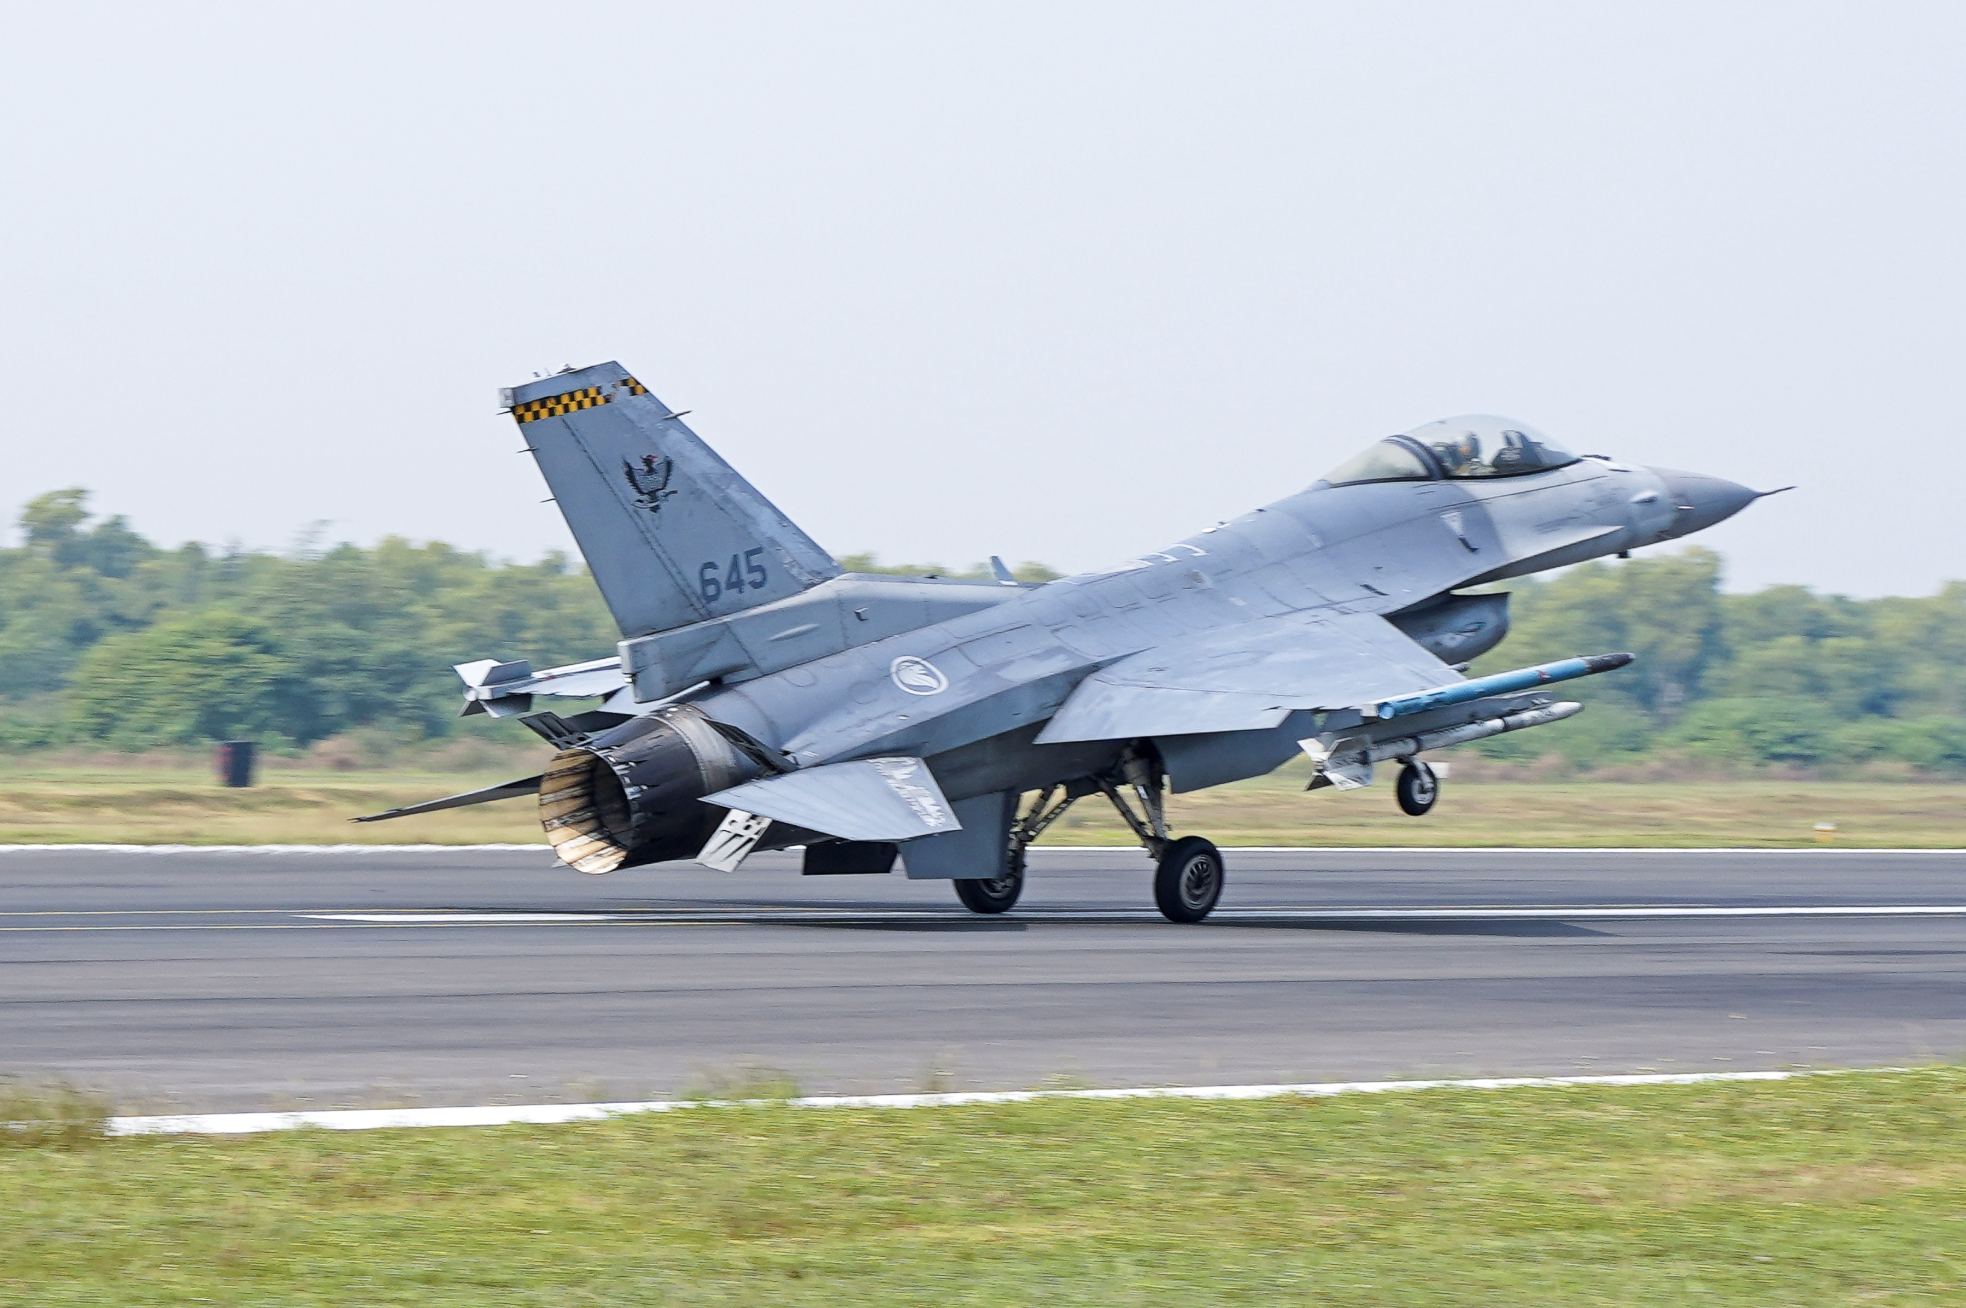 A Republic of Singapore Air Force F-16C fighter aircraft taking off for a mission as part of the Joint Military Exercise (JMT) held in Kailakunda Air Force Station, India. Photo courtesy: Mindef